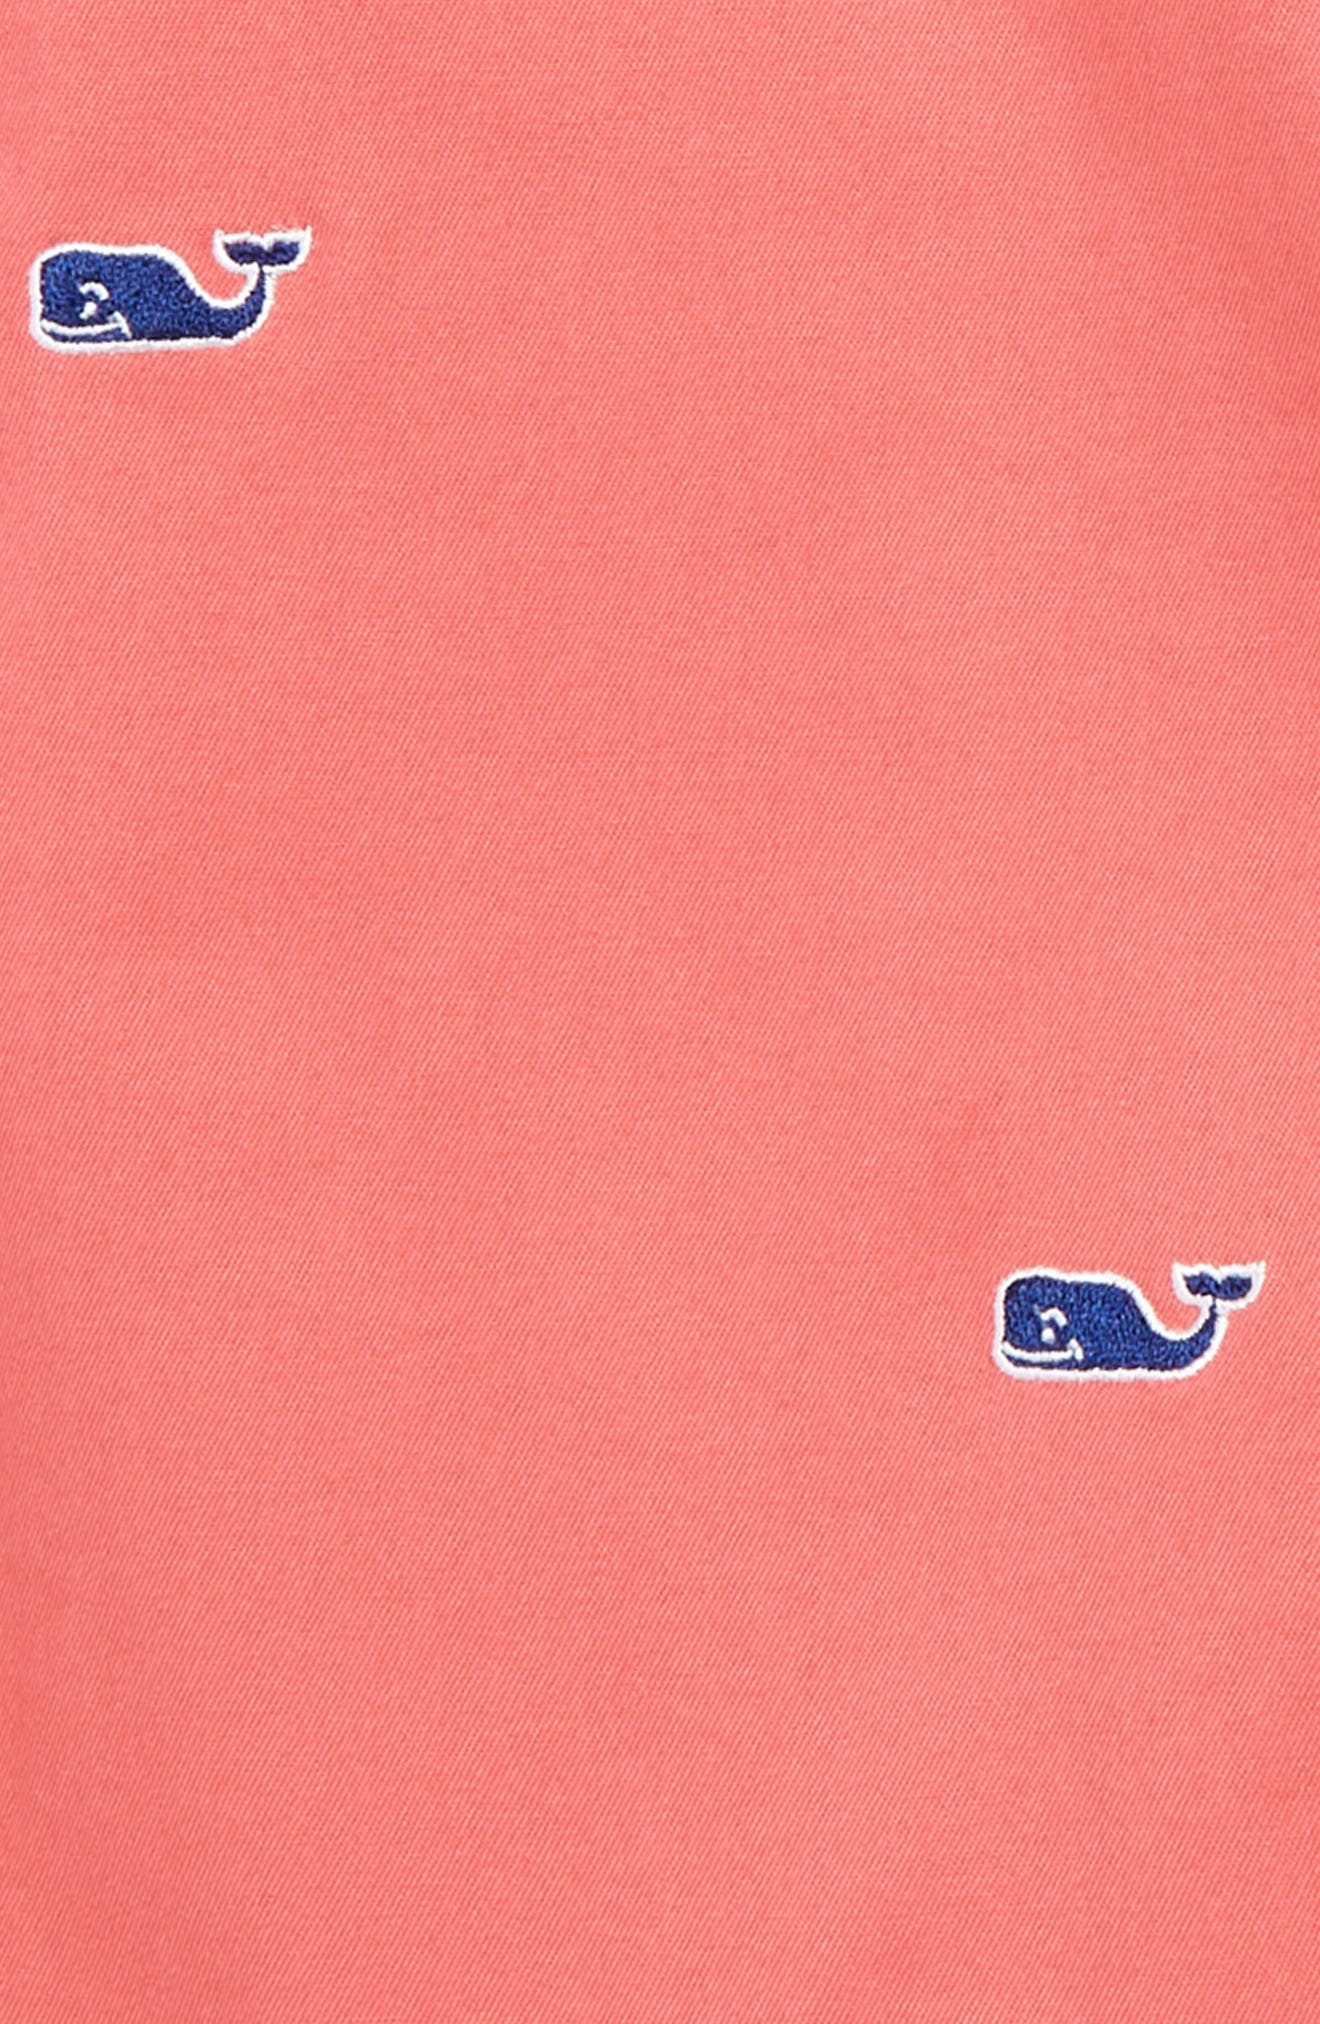 VINEYARD VINES,                             Embroidered Stretch Breaker Shorts,                             Alternate thumbnail 2, color,                             JETTY RED